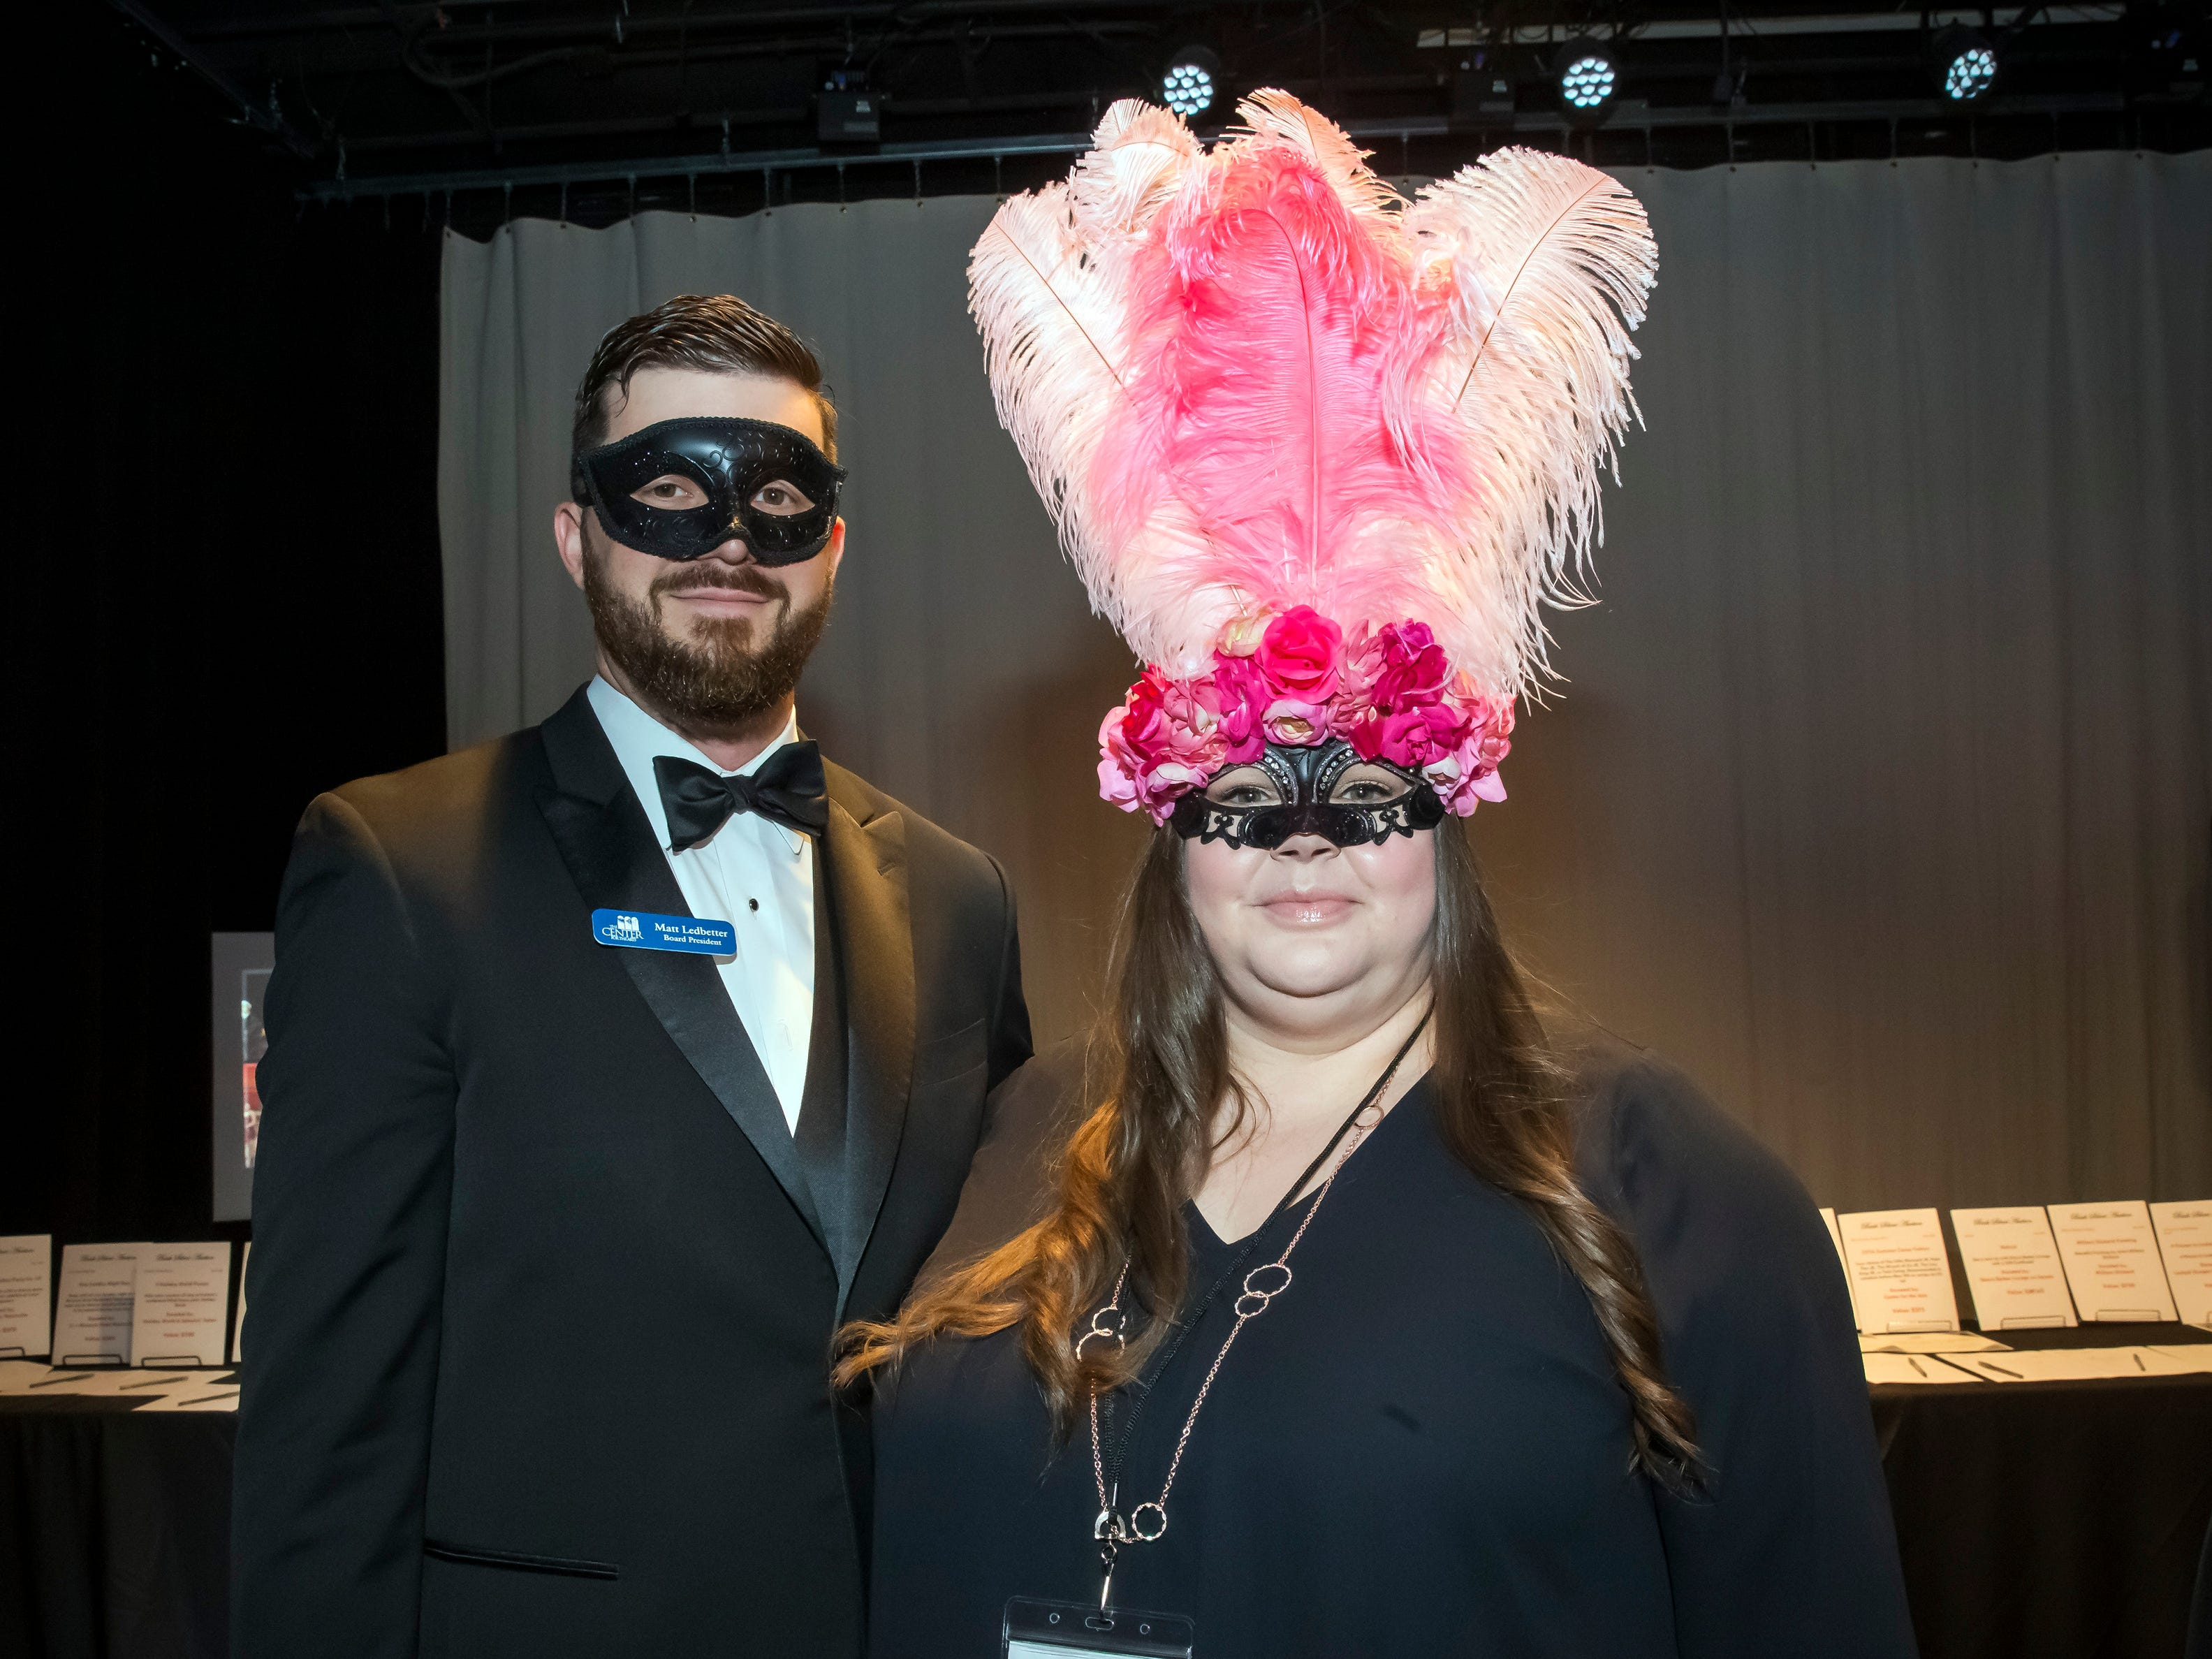 Matt Ledbetter and Patience Long at the Masquerade Bash at the Center for the Arts on Saturday, April 14, 2019.